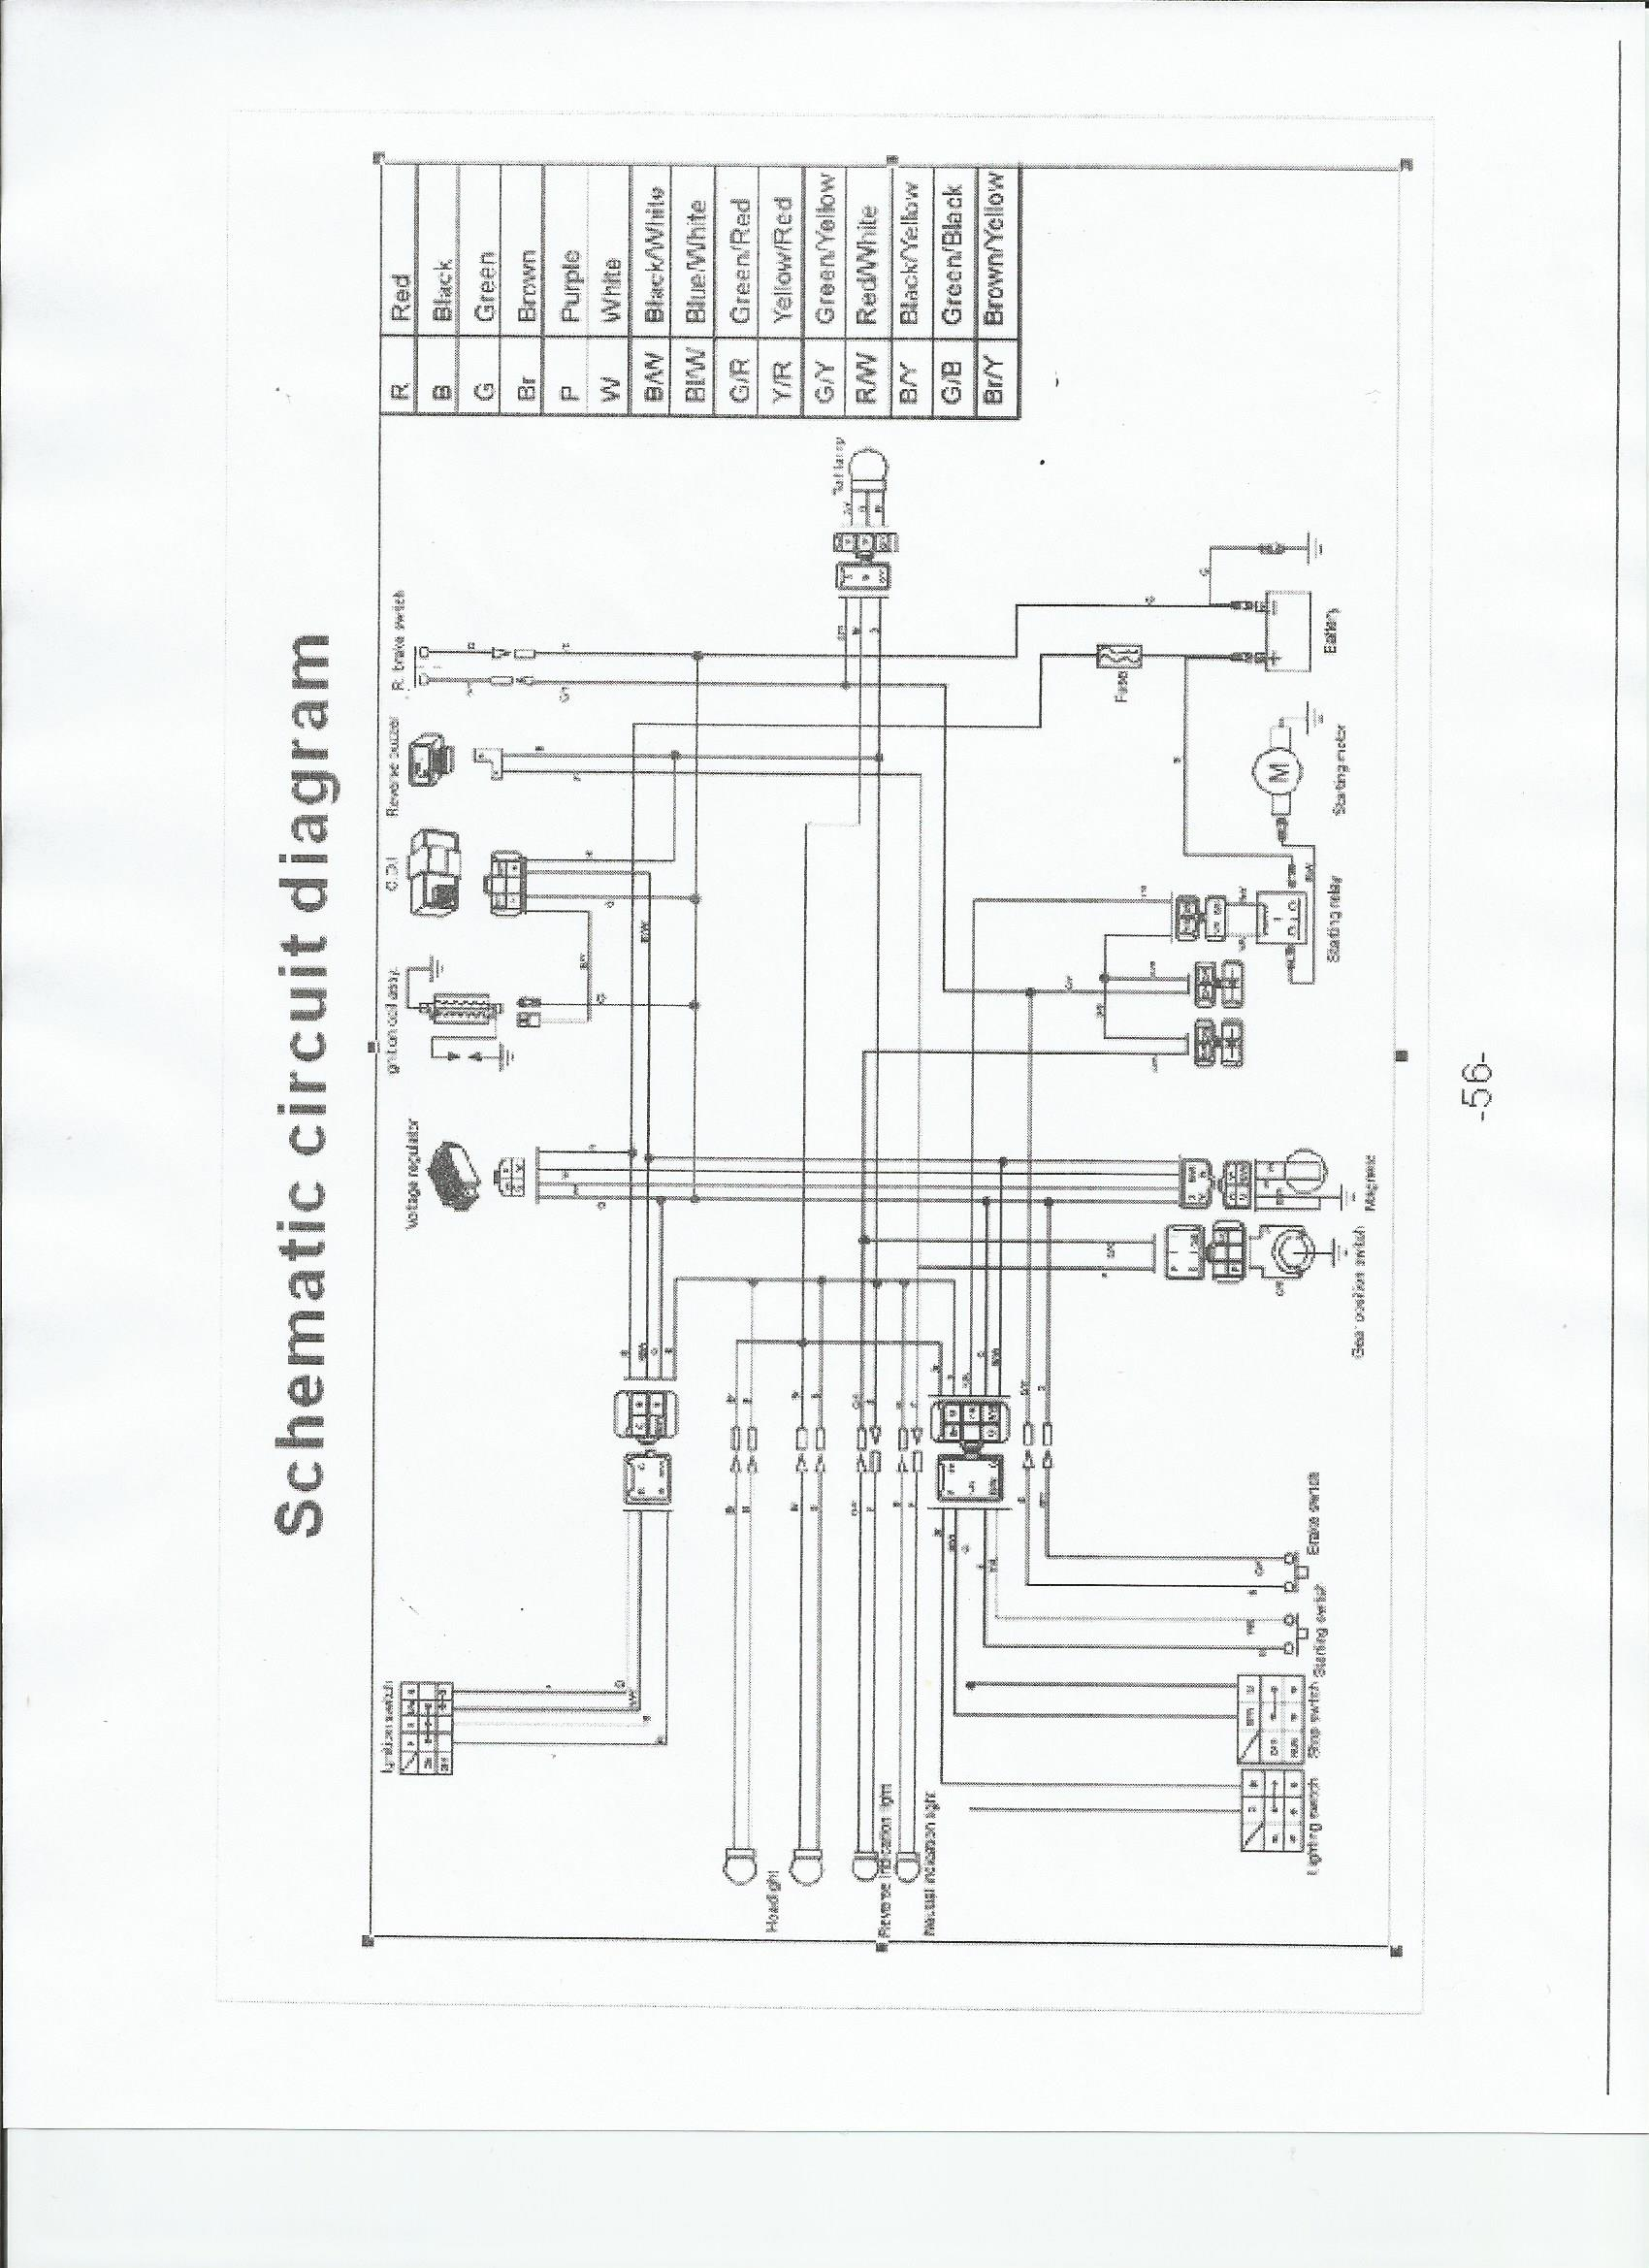 hight resolution of jcl atv wiring diagrams wiring diagram blogatv wiring schematic wiring diagram priv jcl atv wiring diagrams